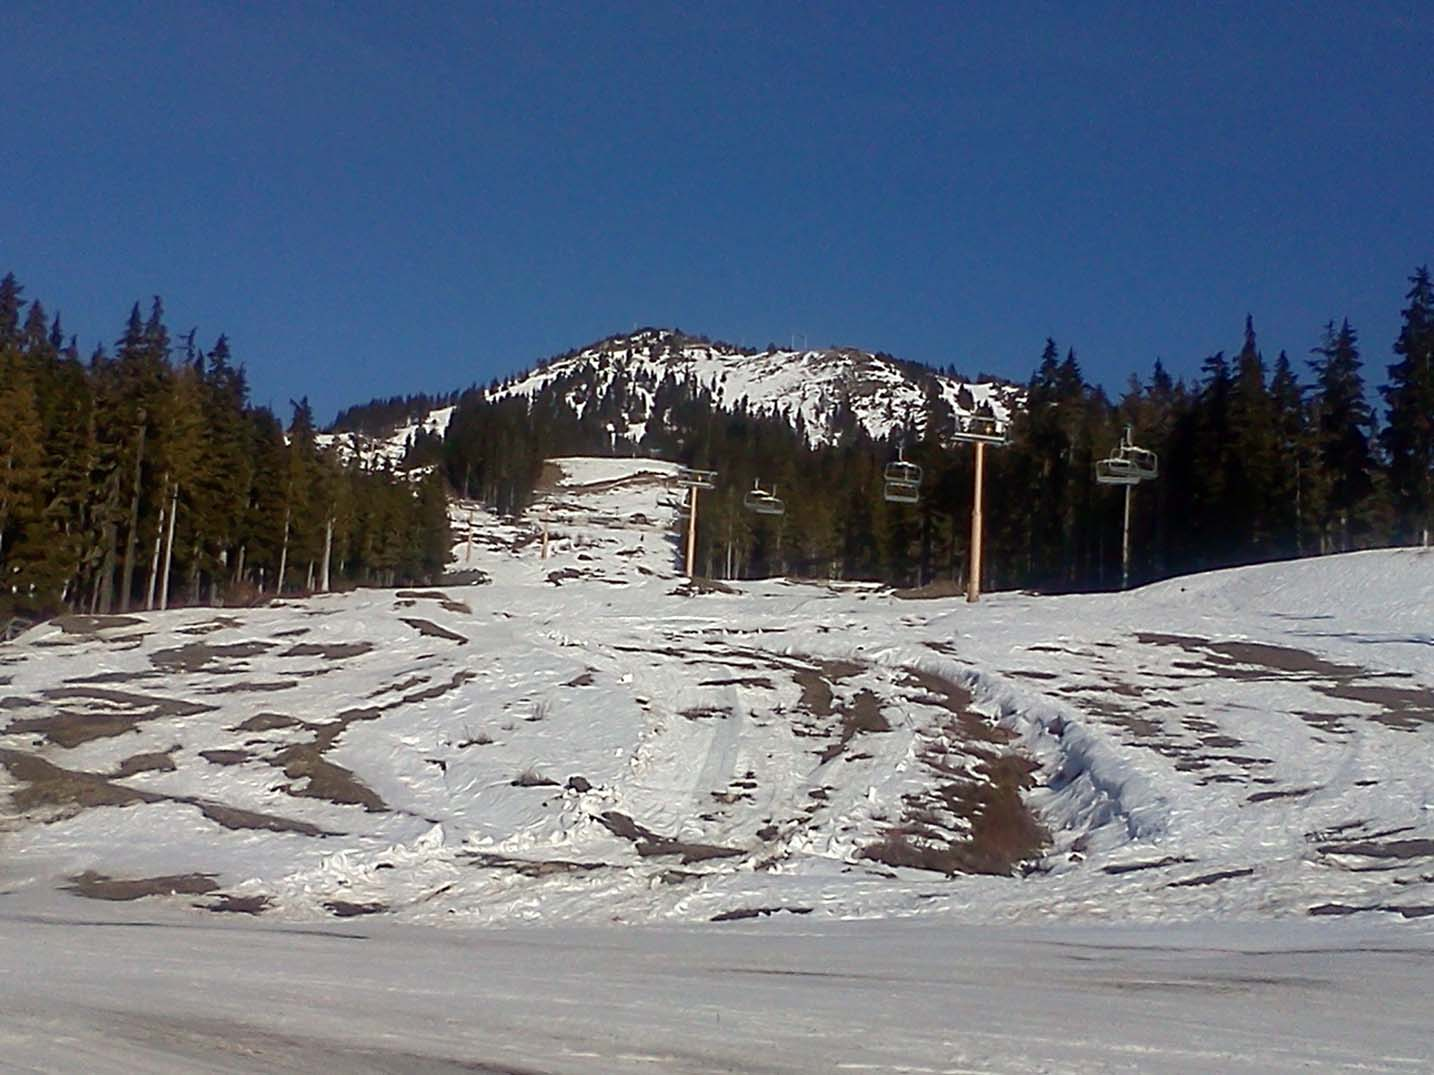 Mount Washington with limited snow